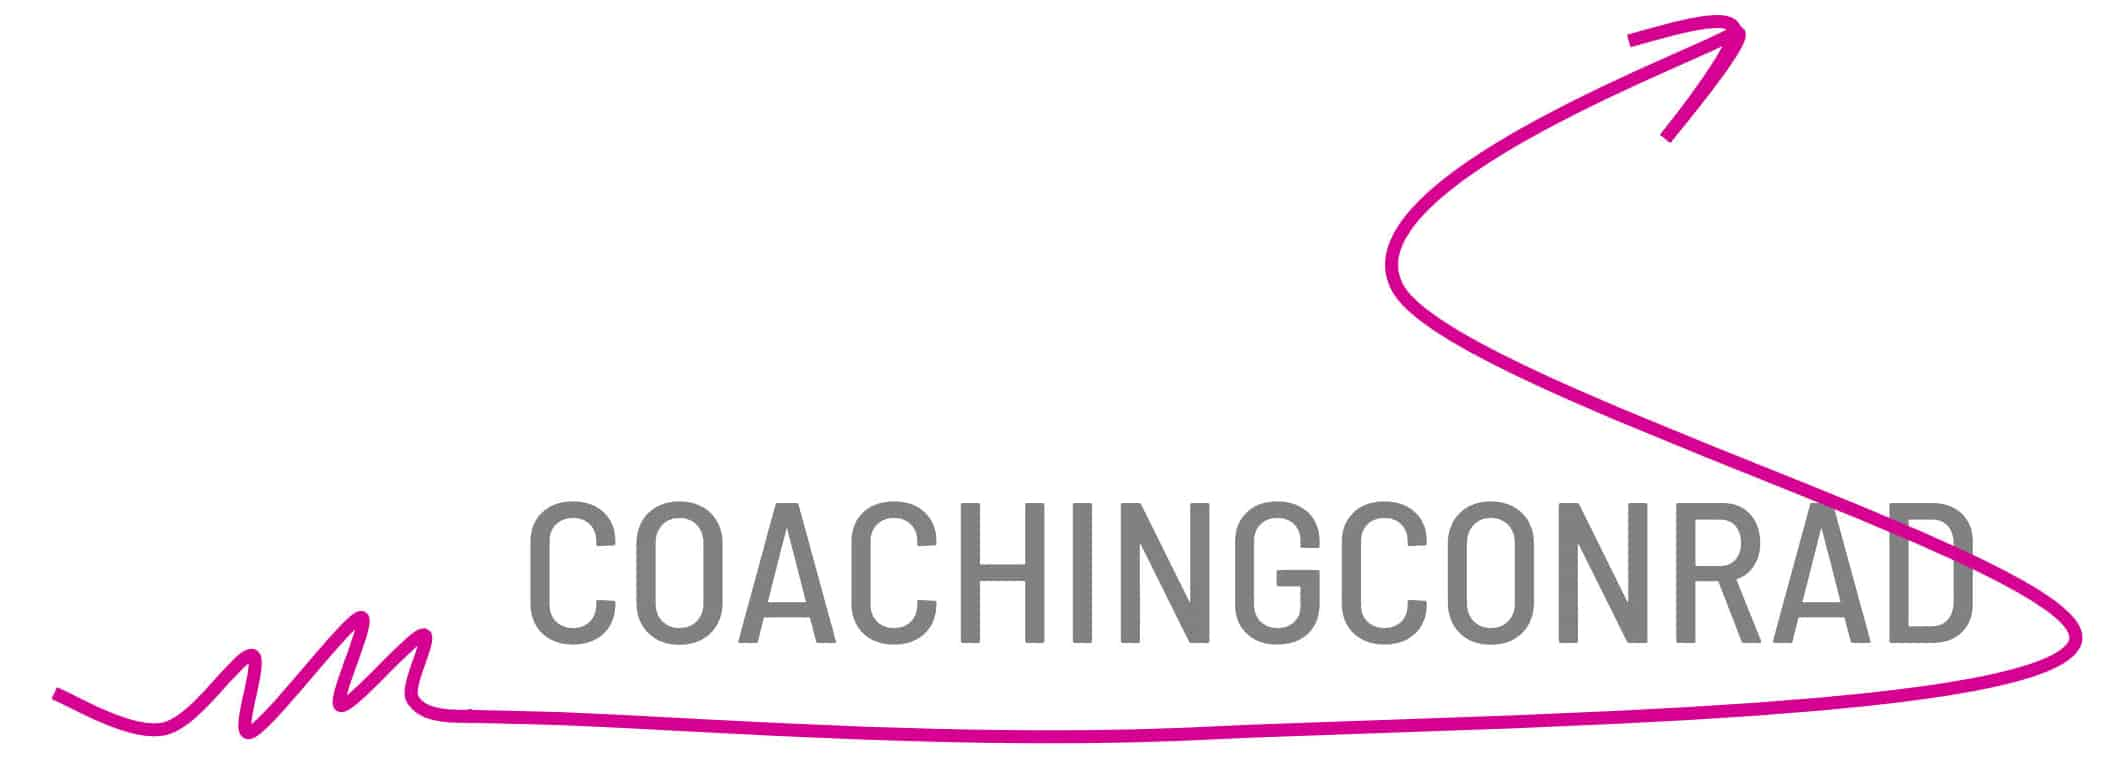 CoachingConrad Logo